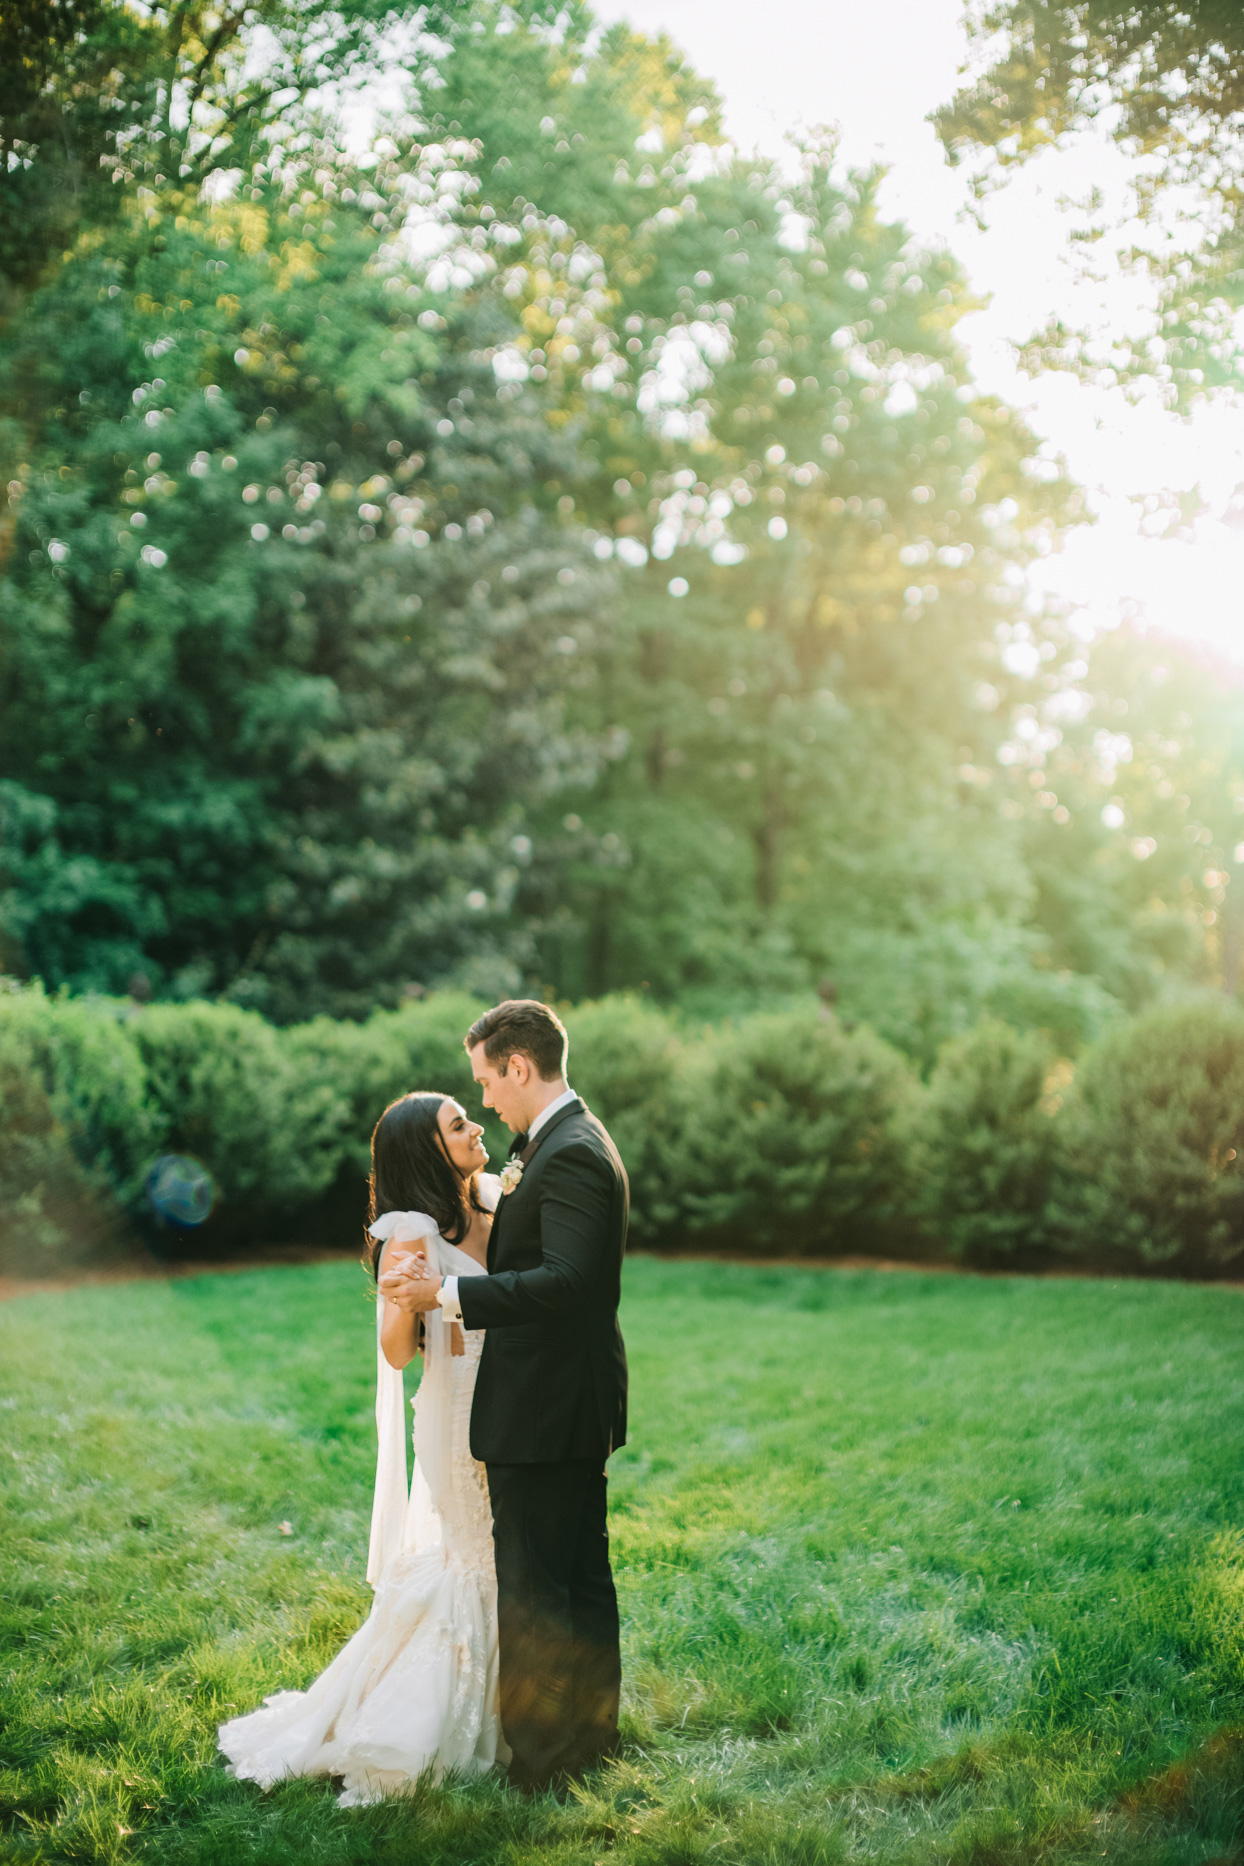 bride and groom embracing on venue lawn